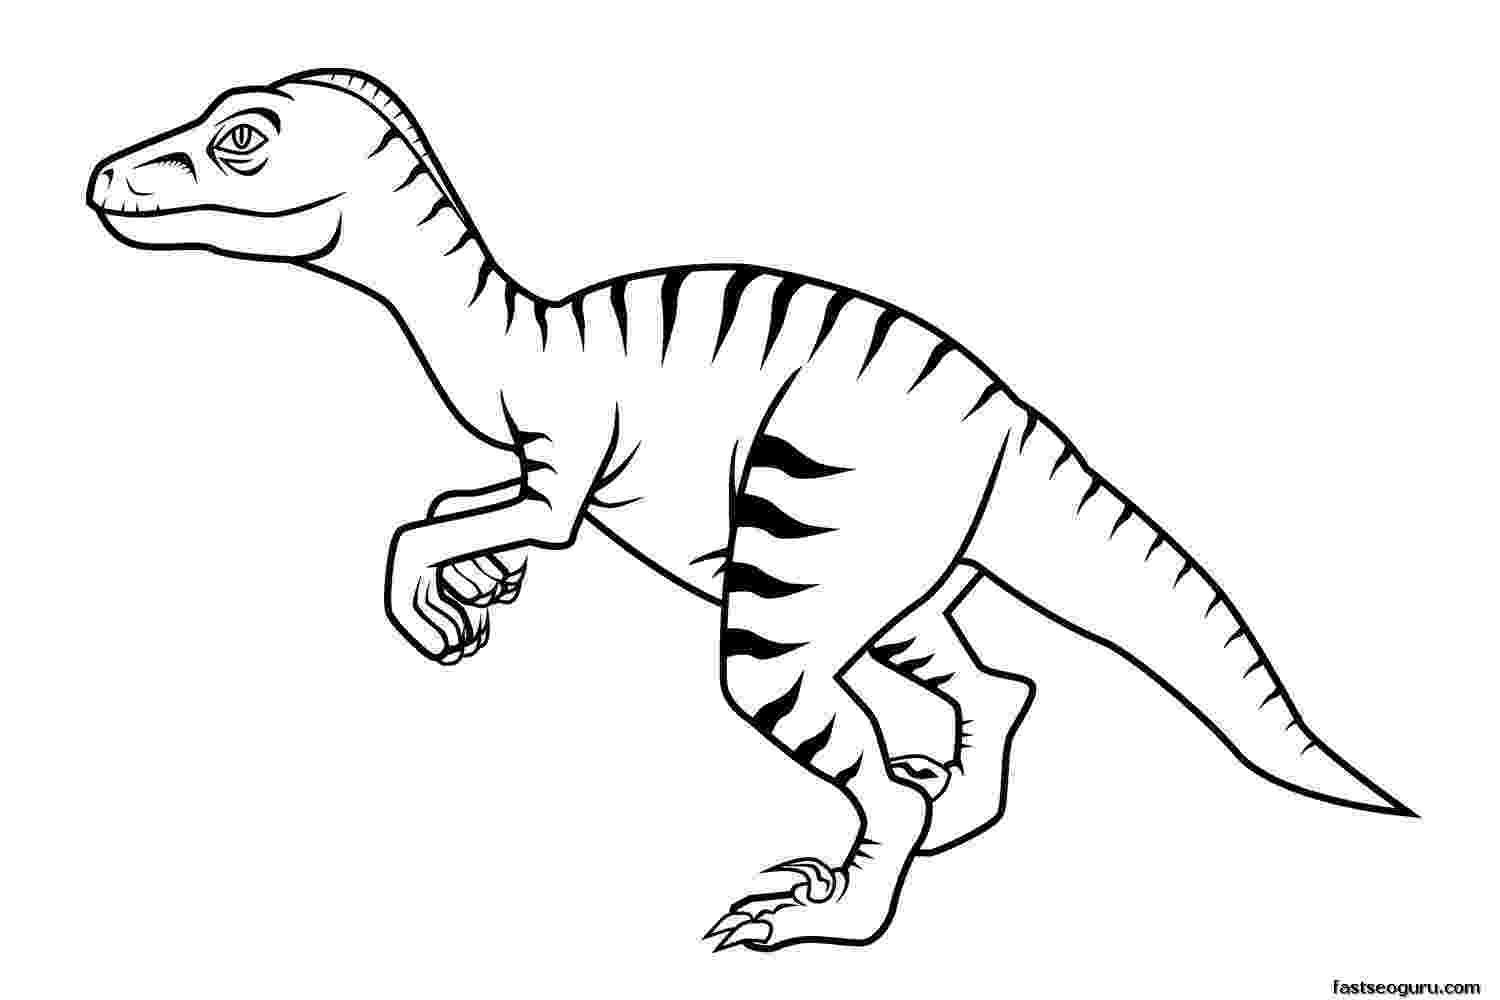 printable dinosaur pictures to color extinct animals 36 printable dinosaur coloring pages printable dinosaur pictures to color